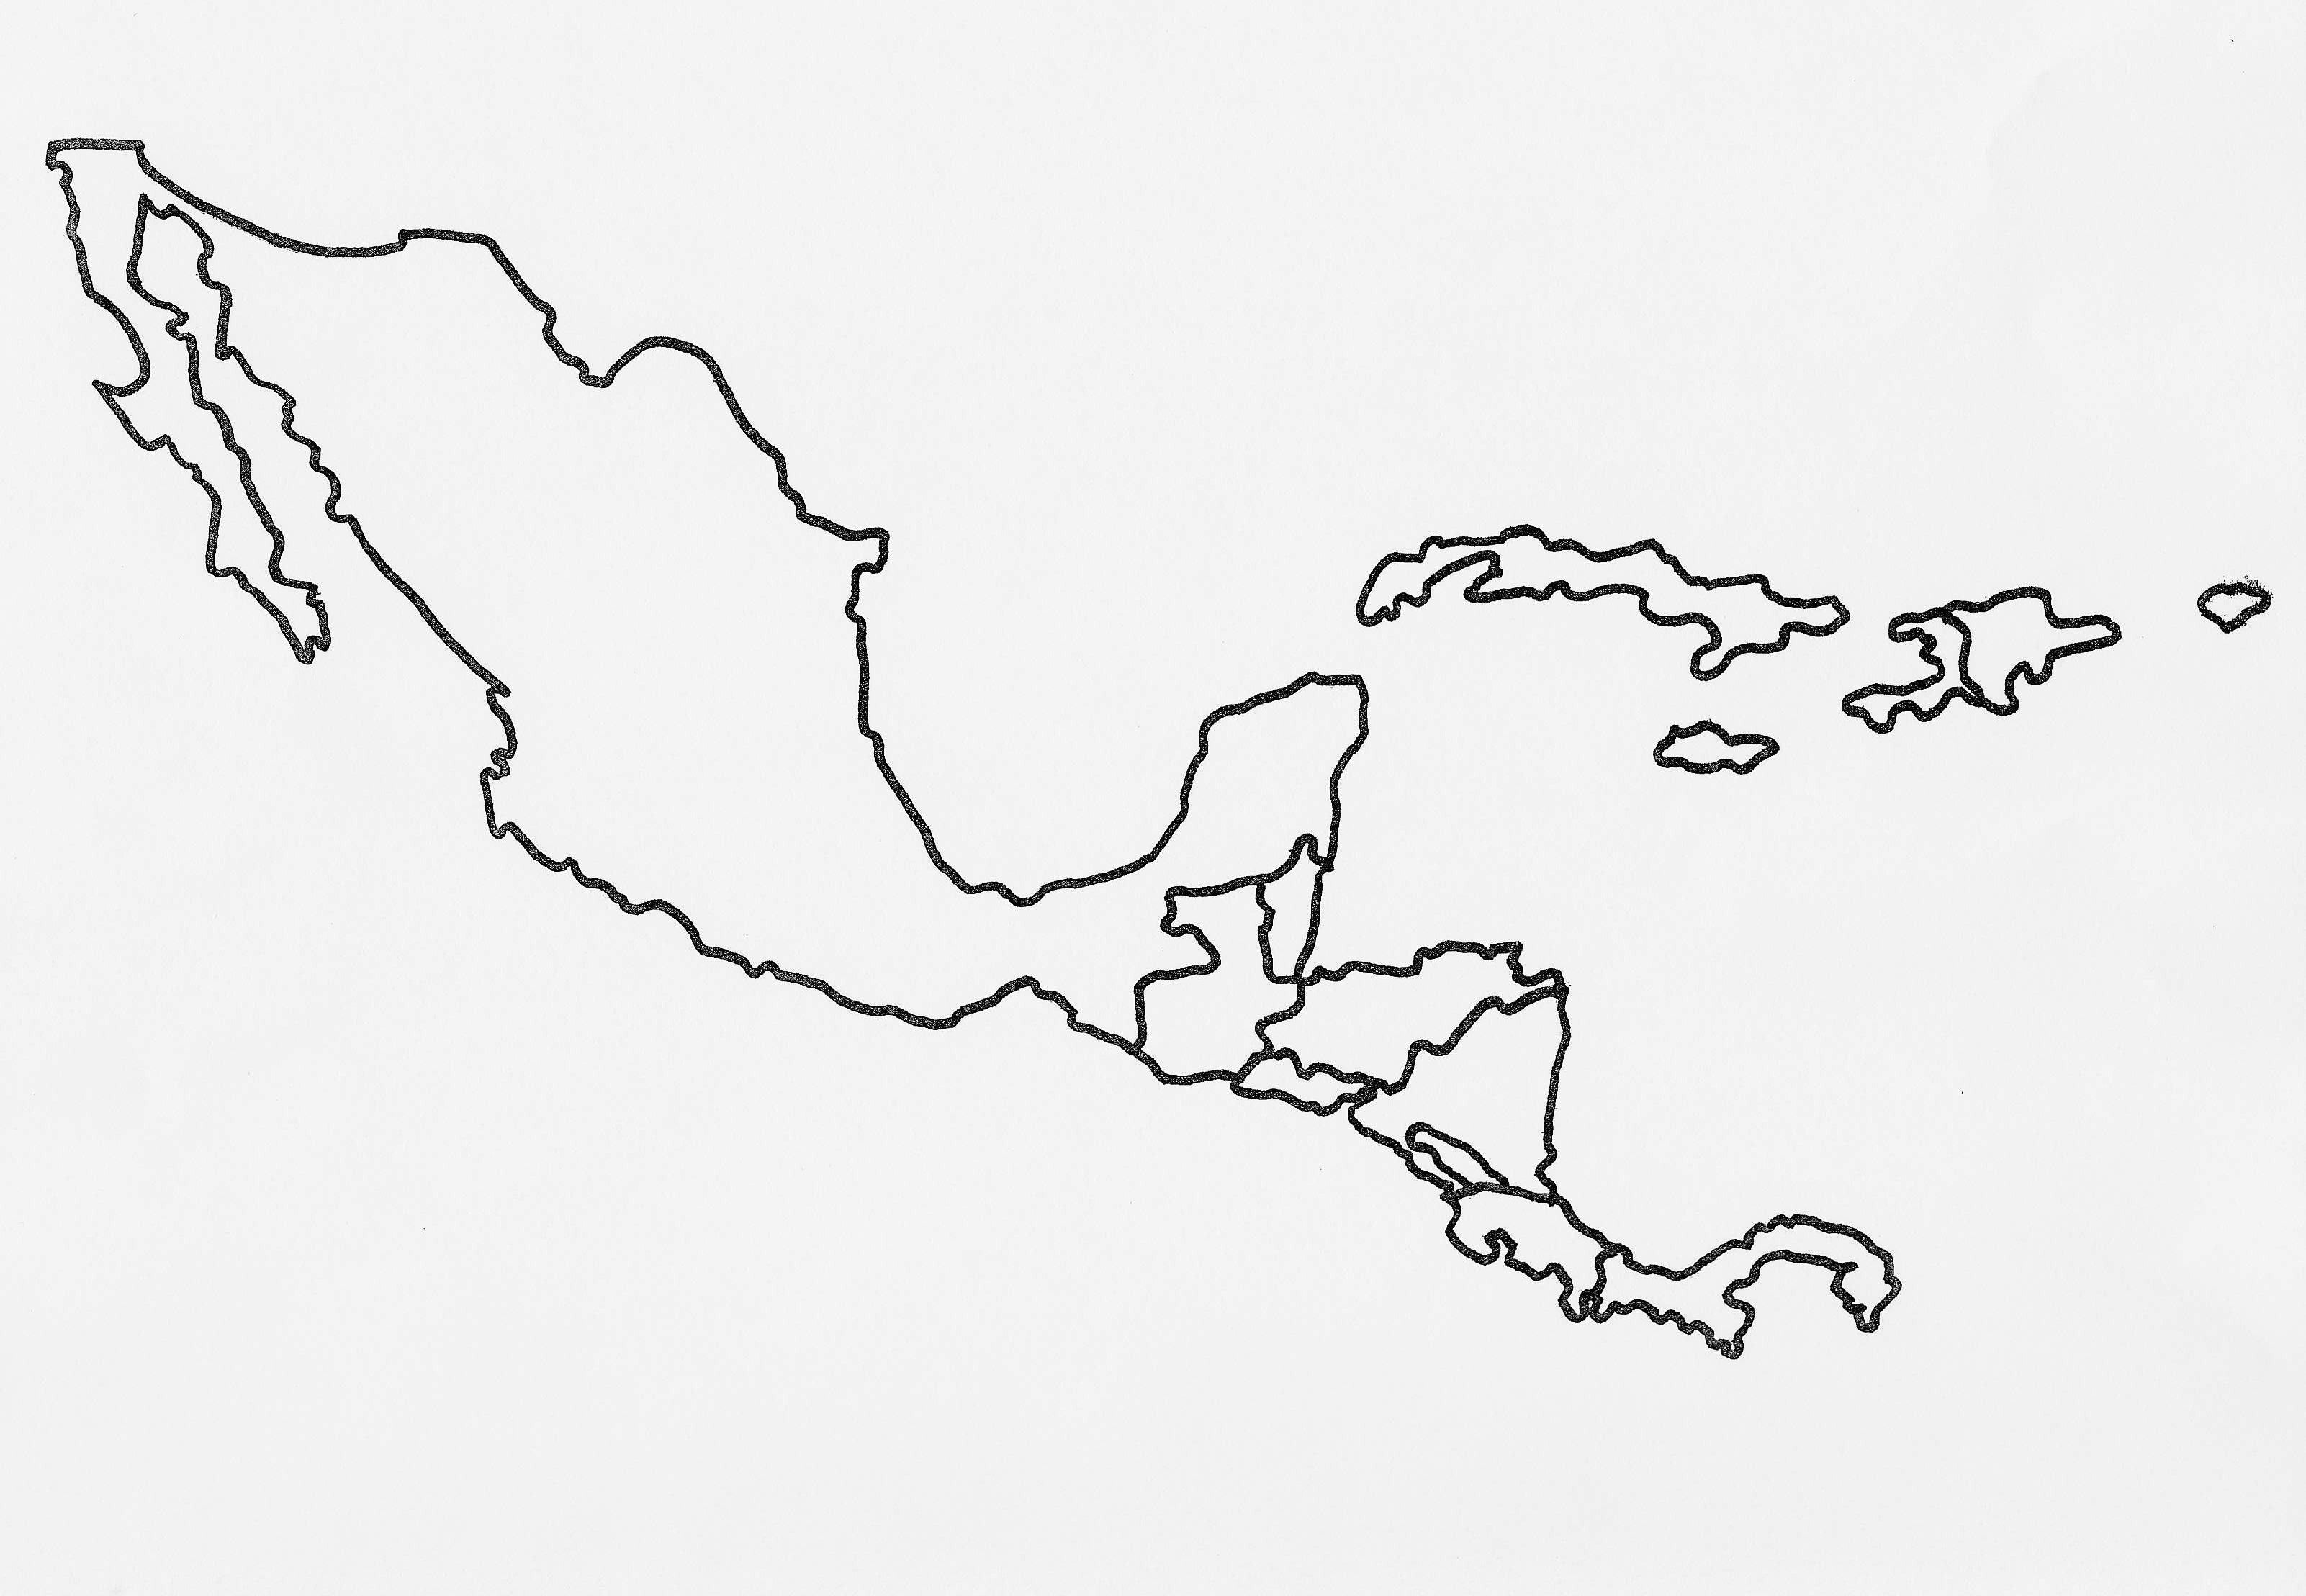 Central America Map Drawing Central America No Labels The Caribbean Blank Map Central America Outline Map Centr Central America Map America Map America Outline